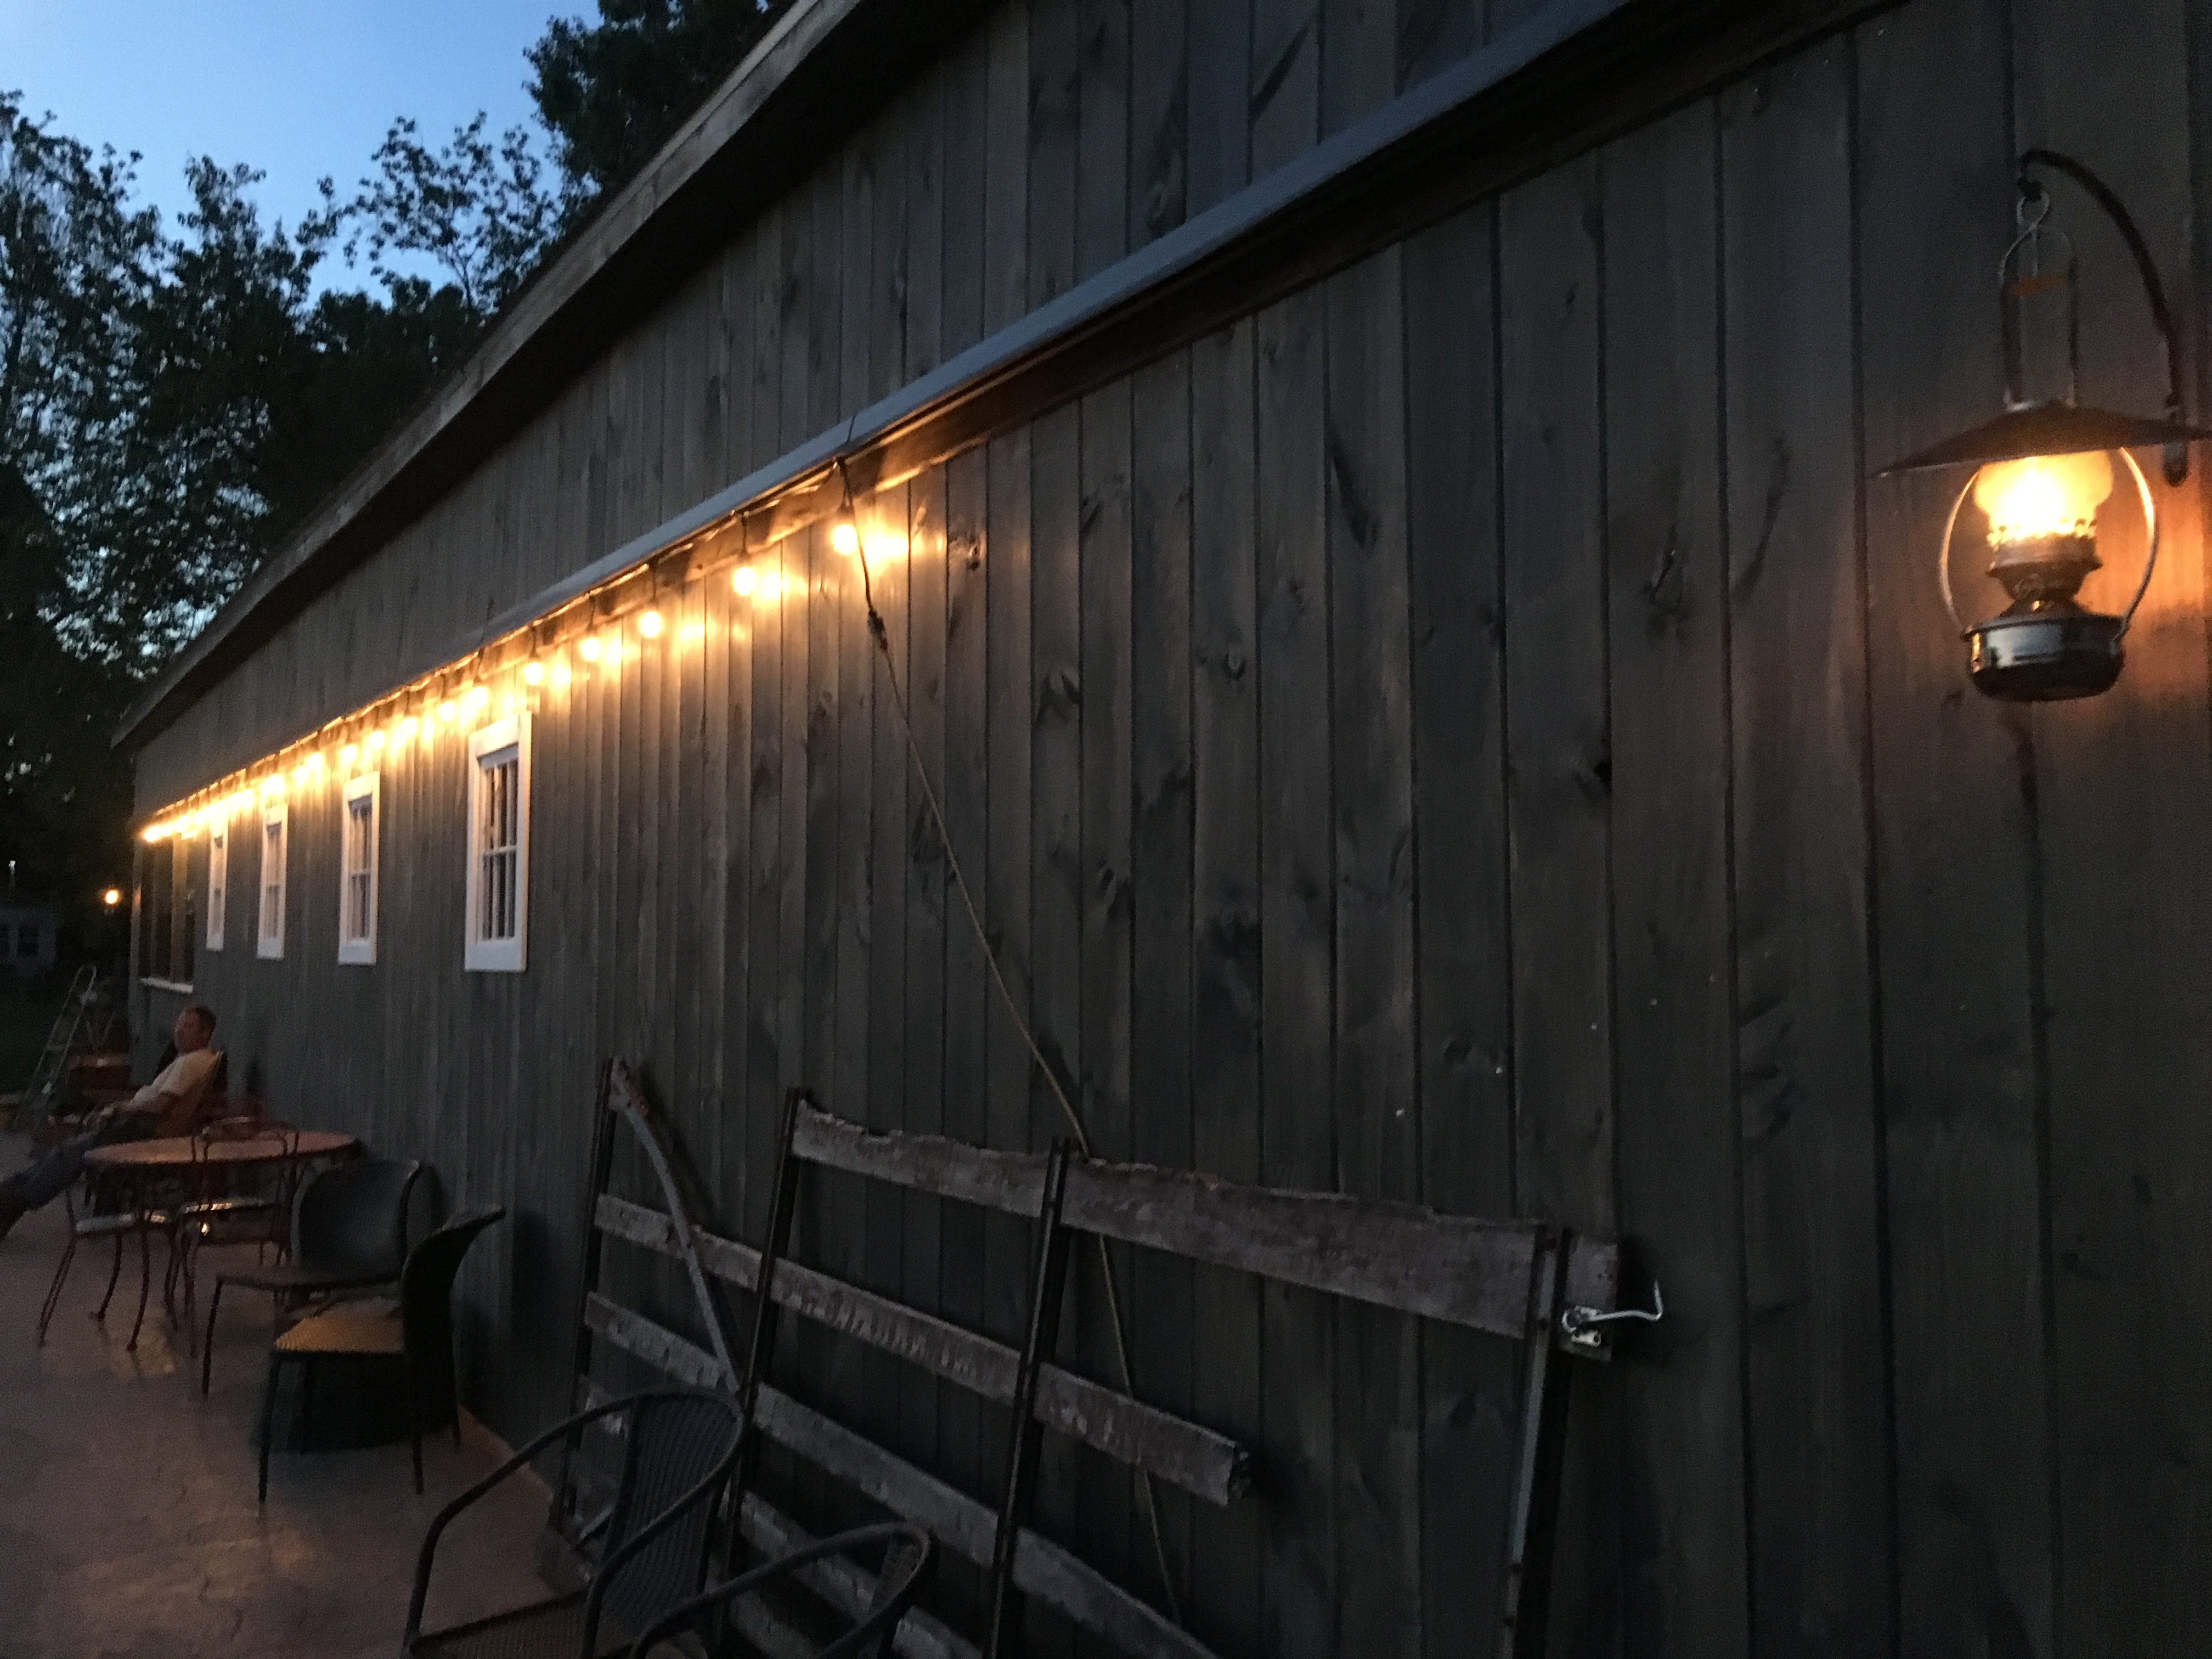 Shows lighting on one side of the barn.